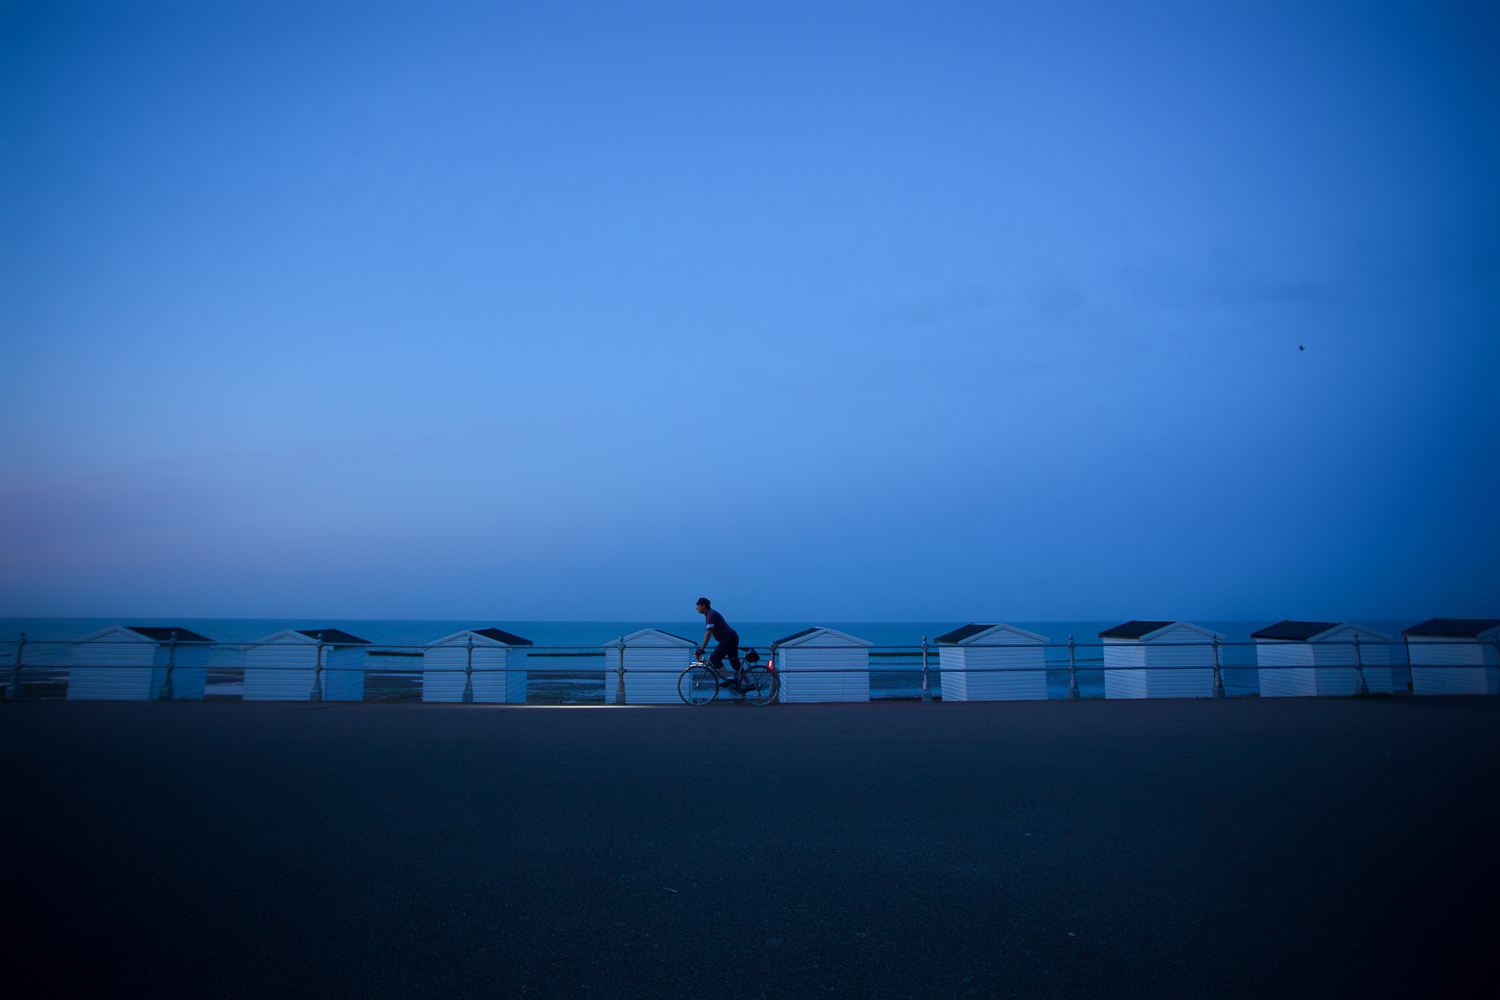 Lamp-lit cyclist pedalling past row of beach huts in blue twilight